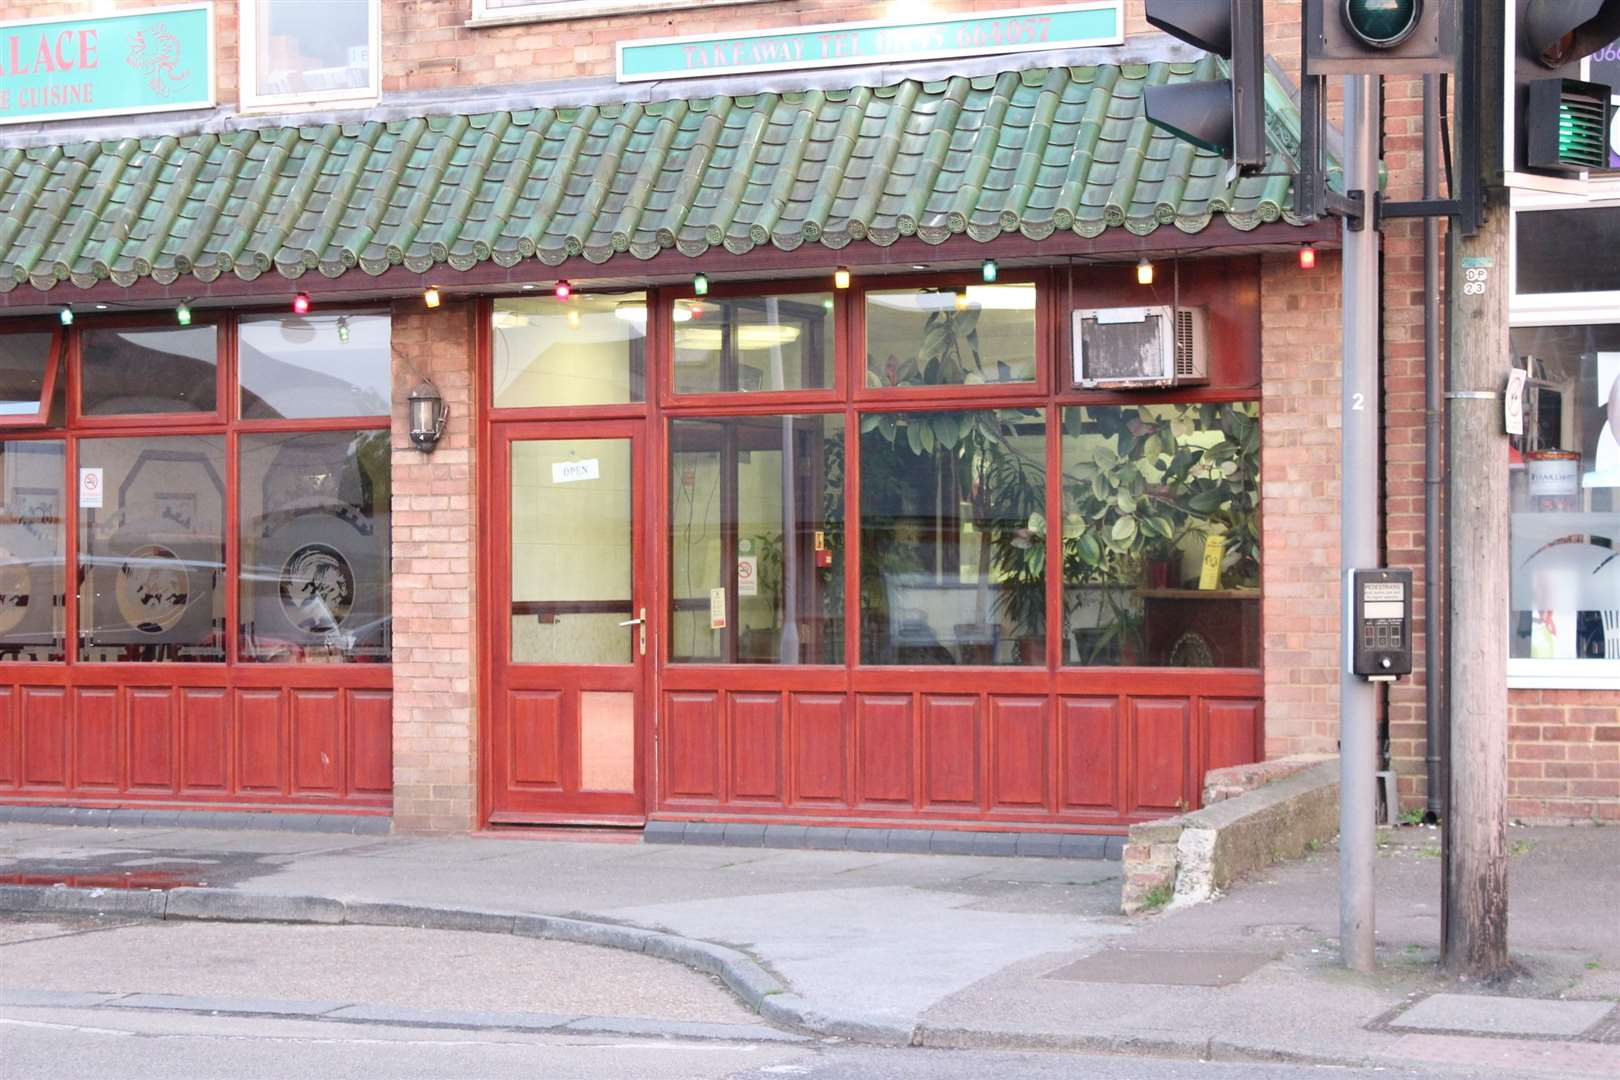 The Dragon Palace offers Sheerness' best takeaway, according to TripAdvisor